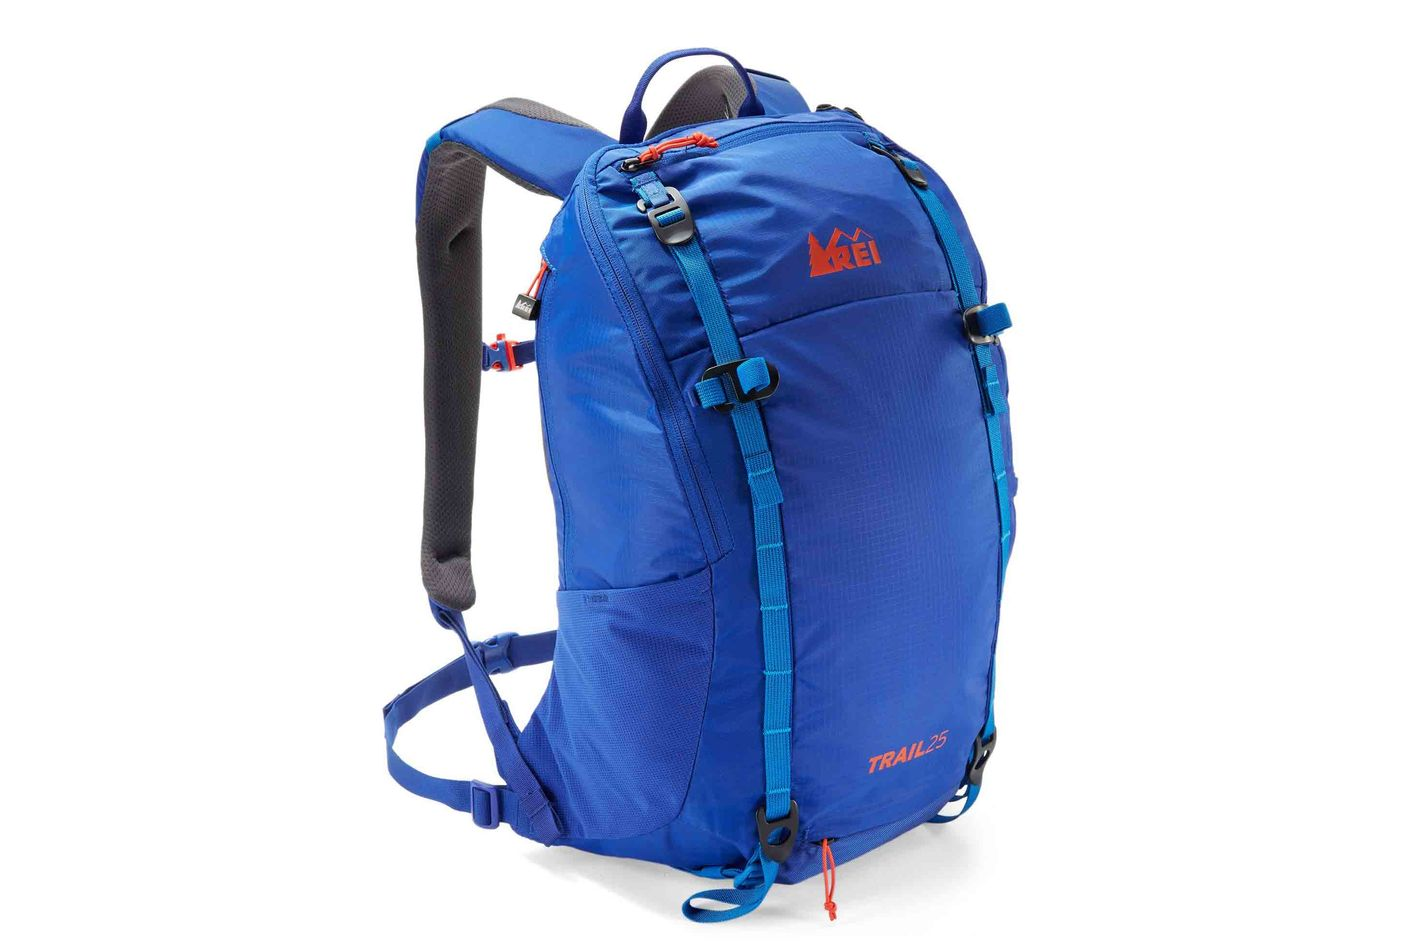 REI Co-op Trail 25 Pack